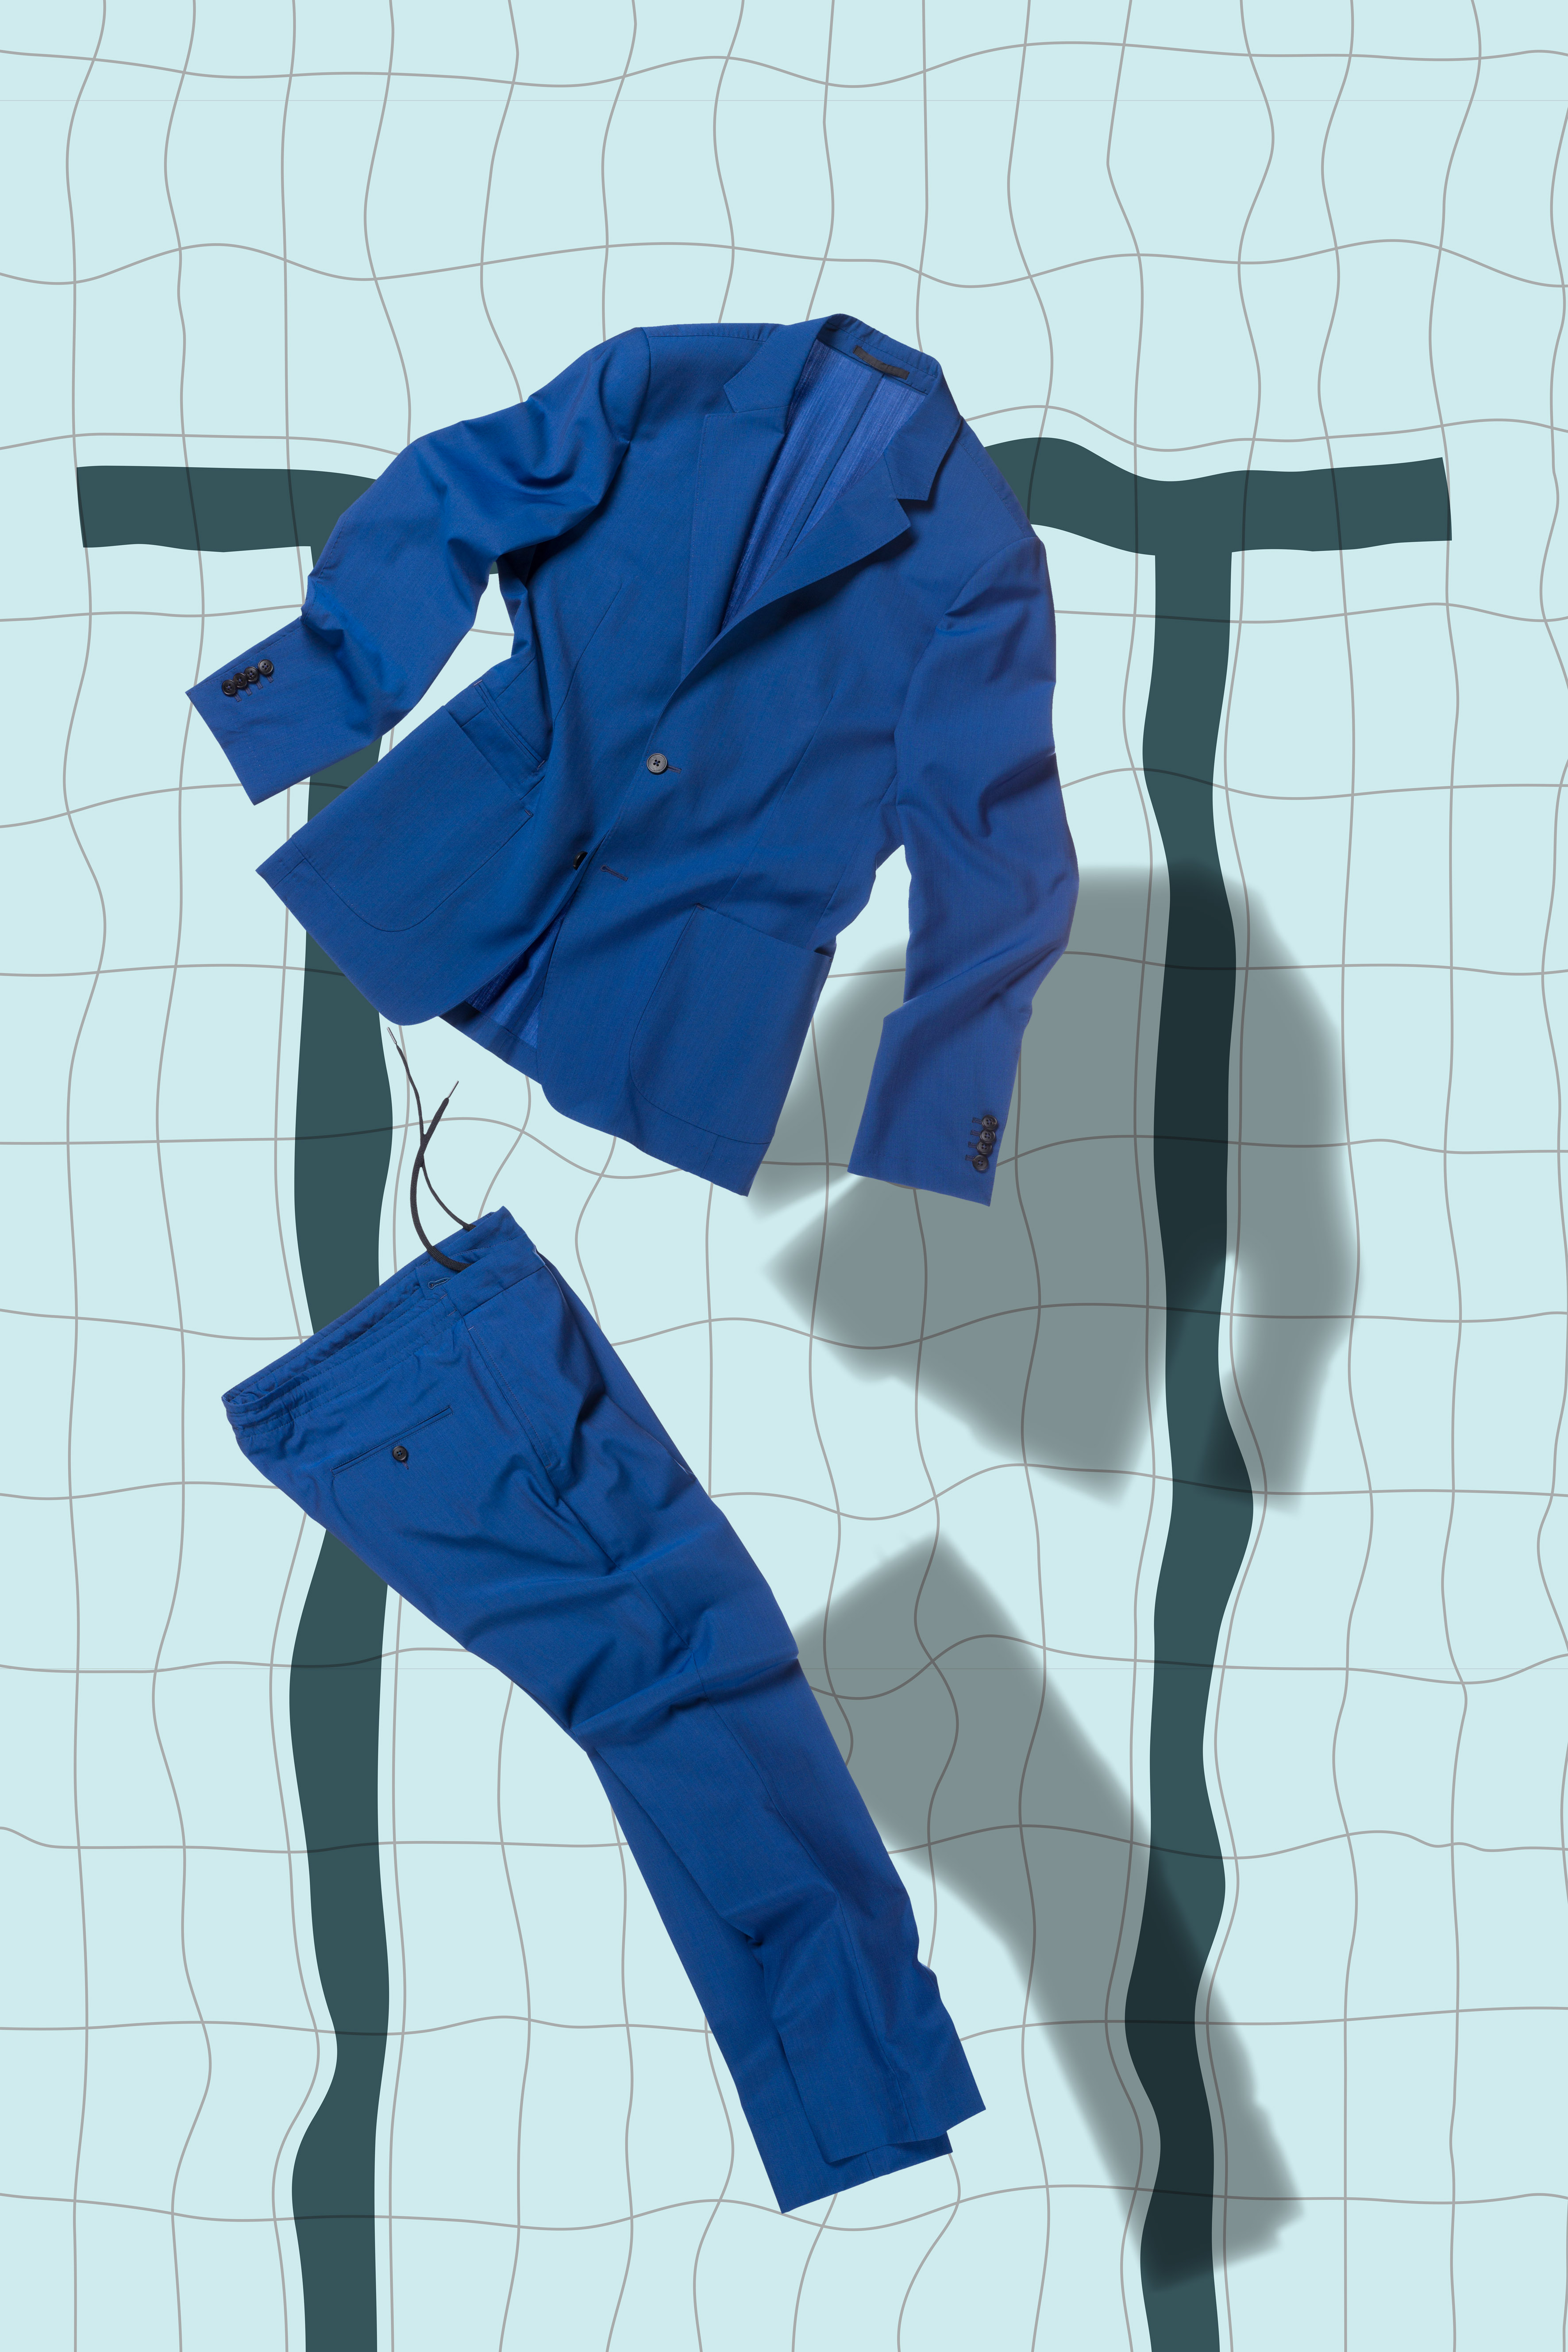 Ermenegildo Zegna blue suit and pants floating in a swimming pool